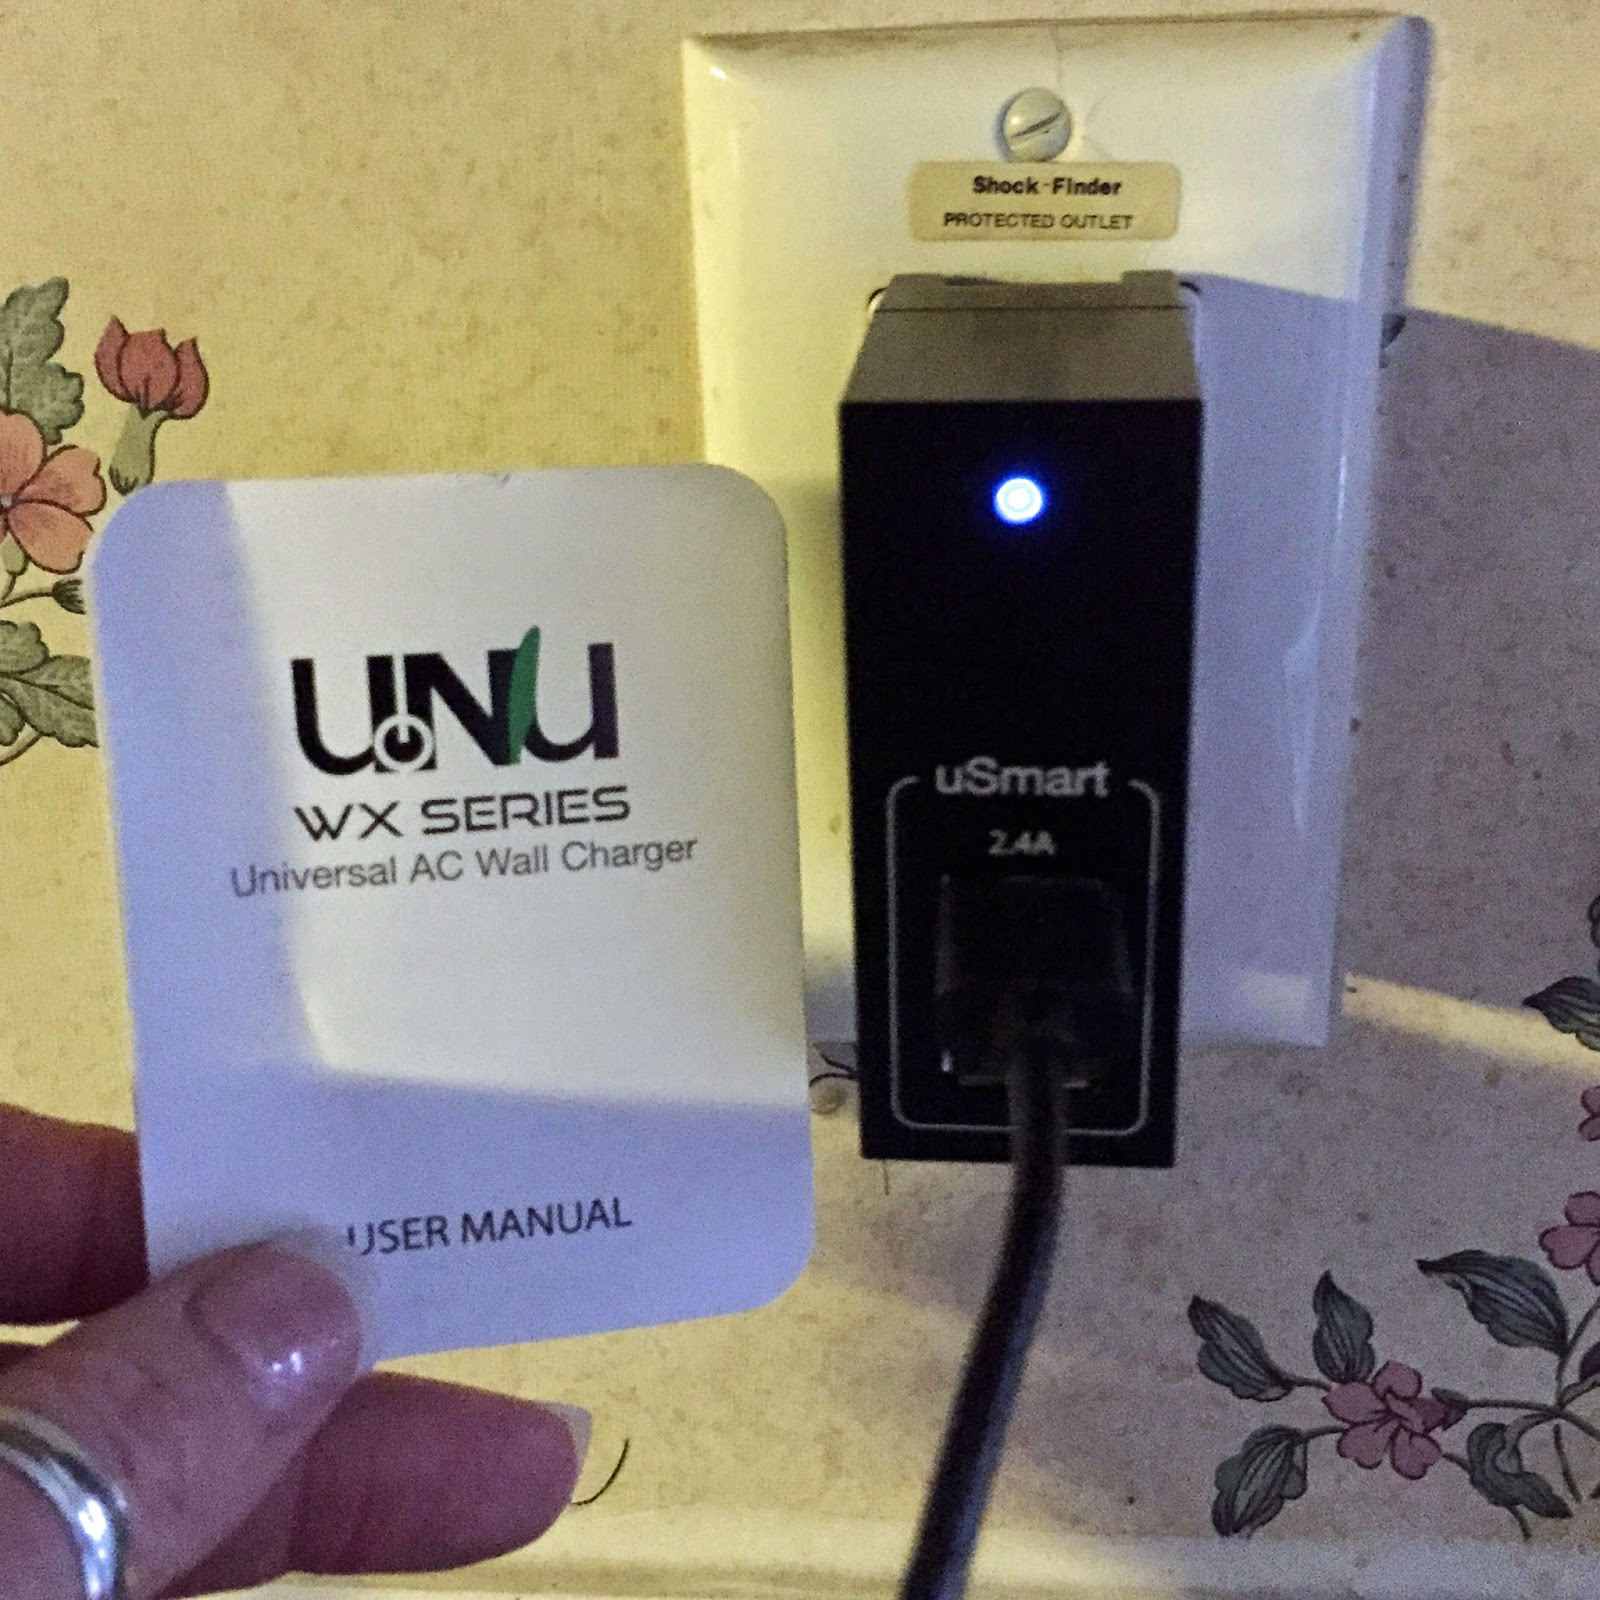 http://www.amazon.com/UNU-Duo-Port-USB-Wall-Charger/dp/B00LOZ5AT6/ref=sr_1_1?s=wireless&ie=UTF8&qid=1424951648&sr=1-1&keywords=unu+wx+2+port